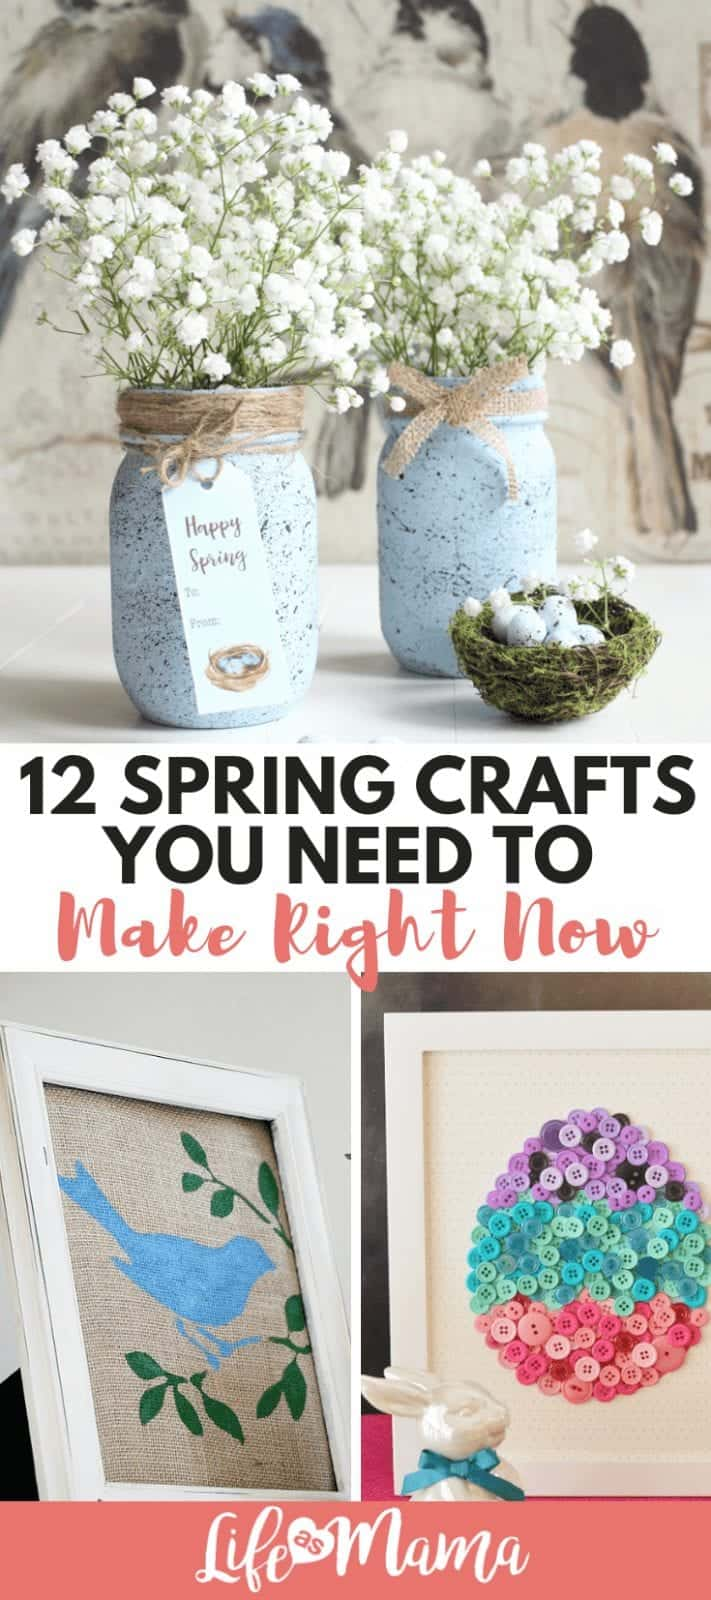 12 Spring Crafts You Need To Make Right Now